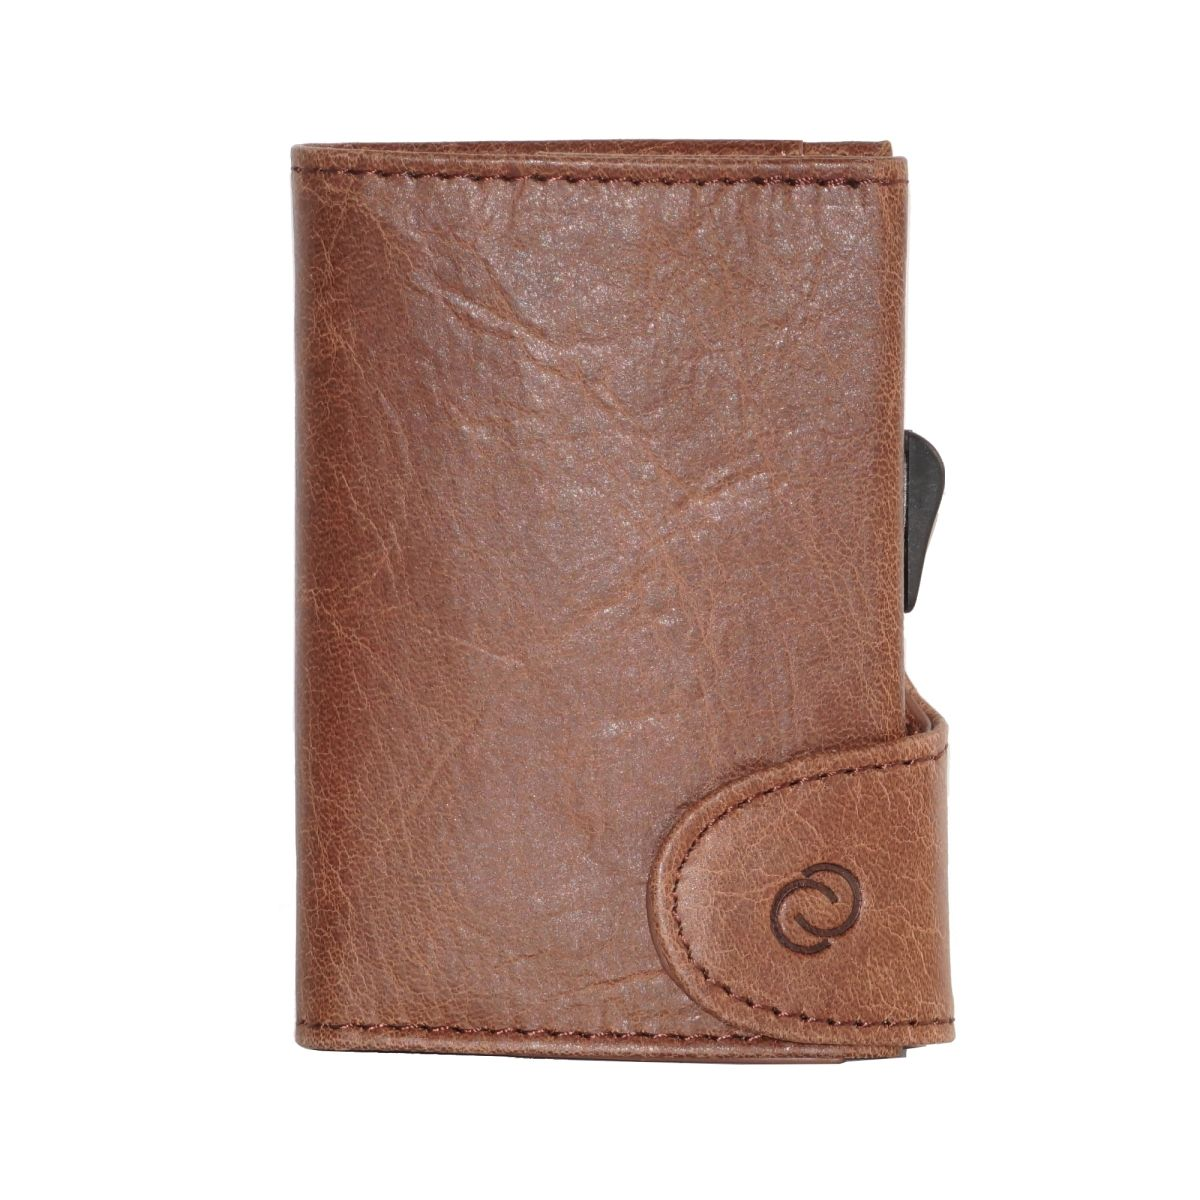 Aluminum Card Holder with PU Leather - Dark Brown